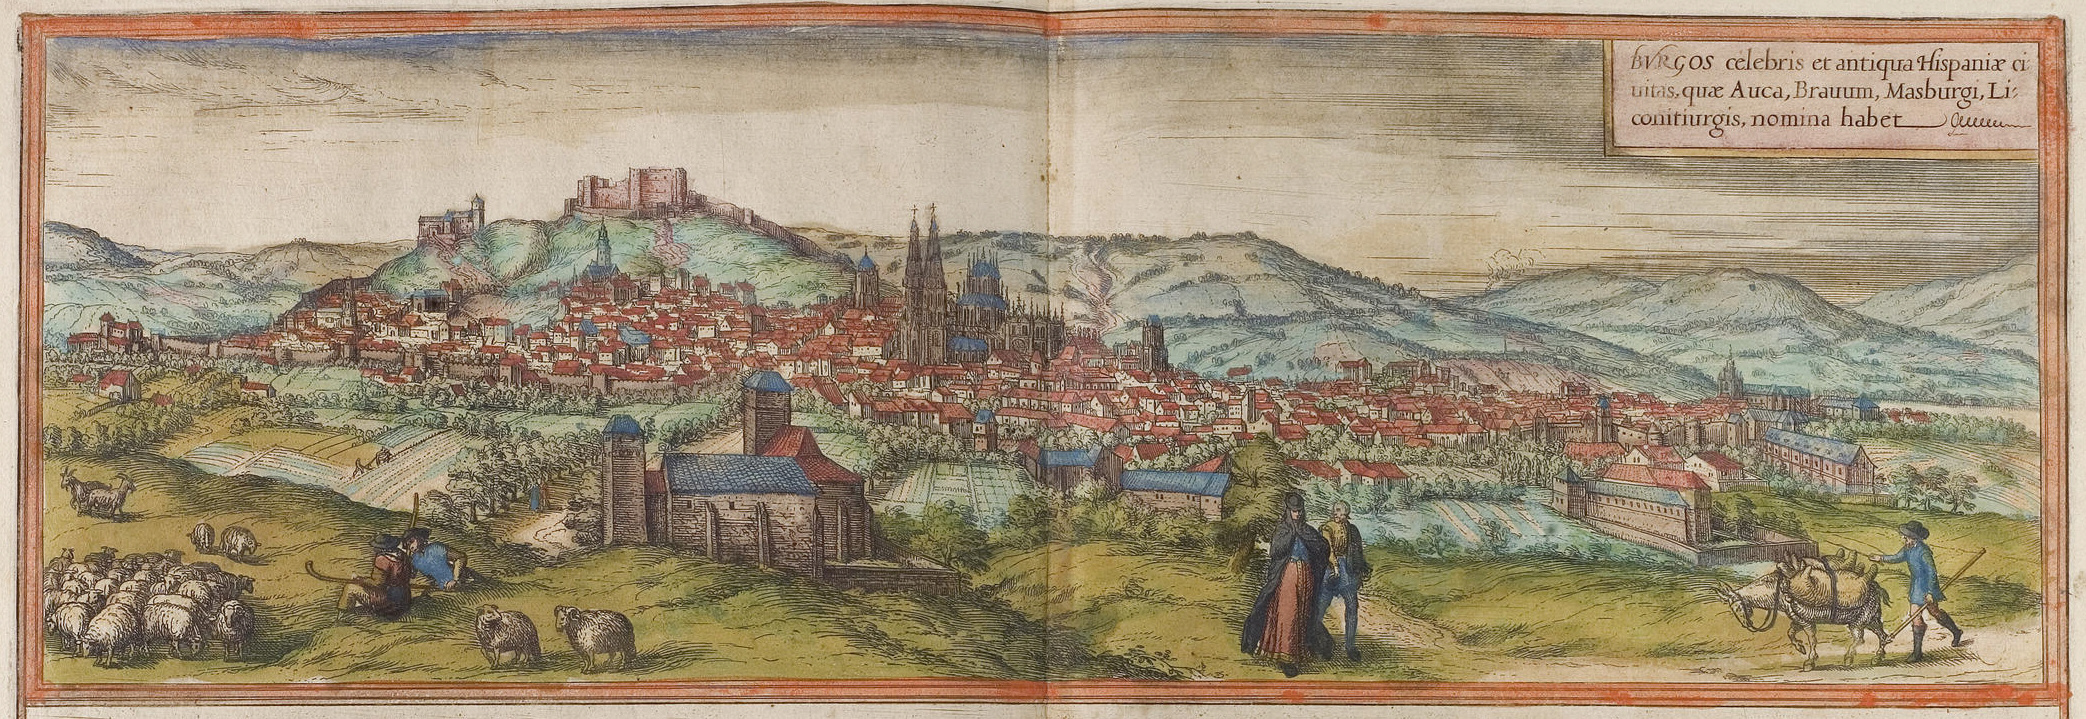 A colored drawing of the city of Burgos, Spain, around 1572. There are shepherds, nobleman, and a trader in the foreground. A cathedral dominates the city center, and there is a castle on the hill in the background.